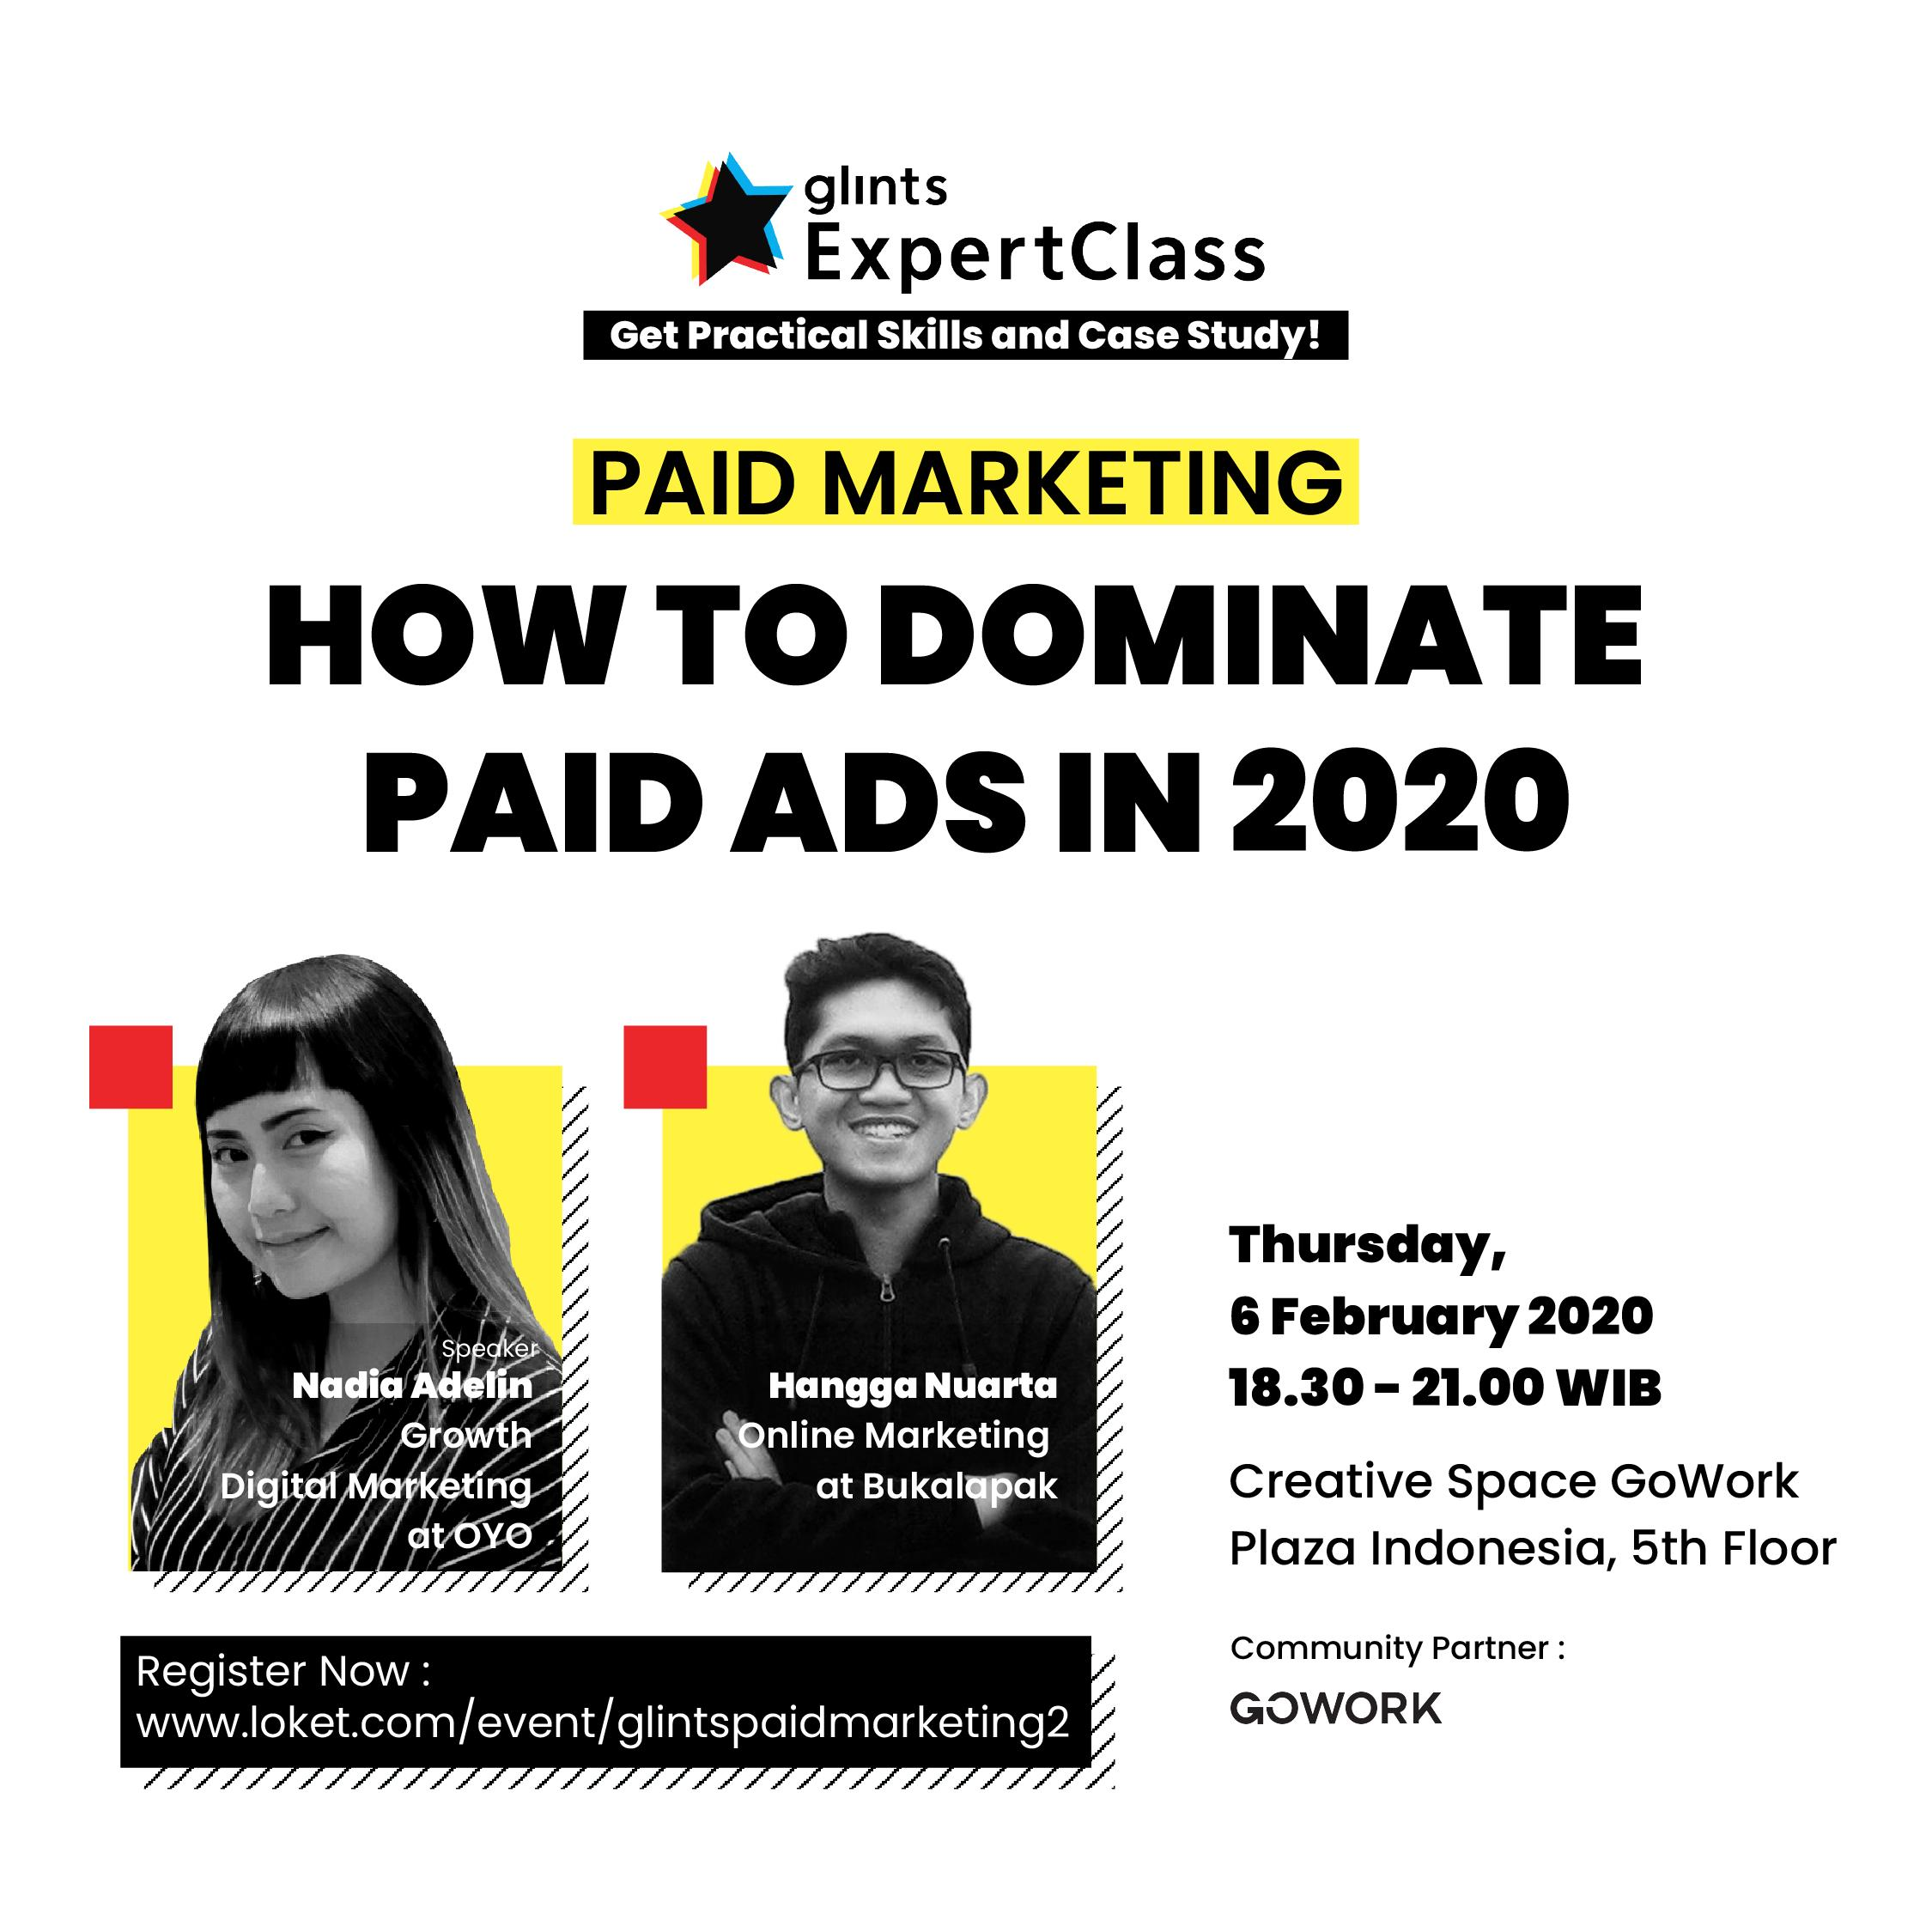 Glints Expert Class - Paid Marketing : How To Dominate Paid Ads In 2020